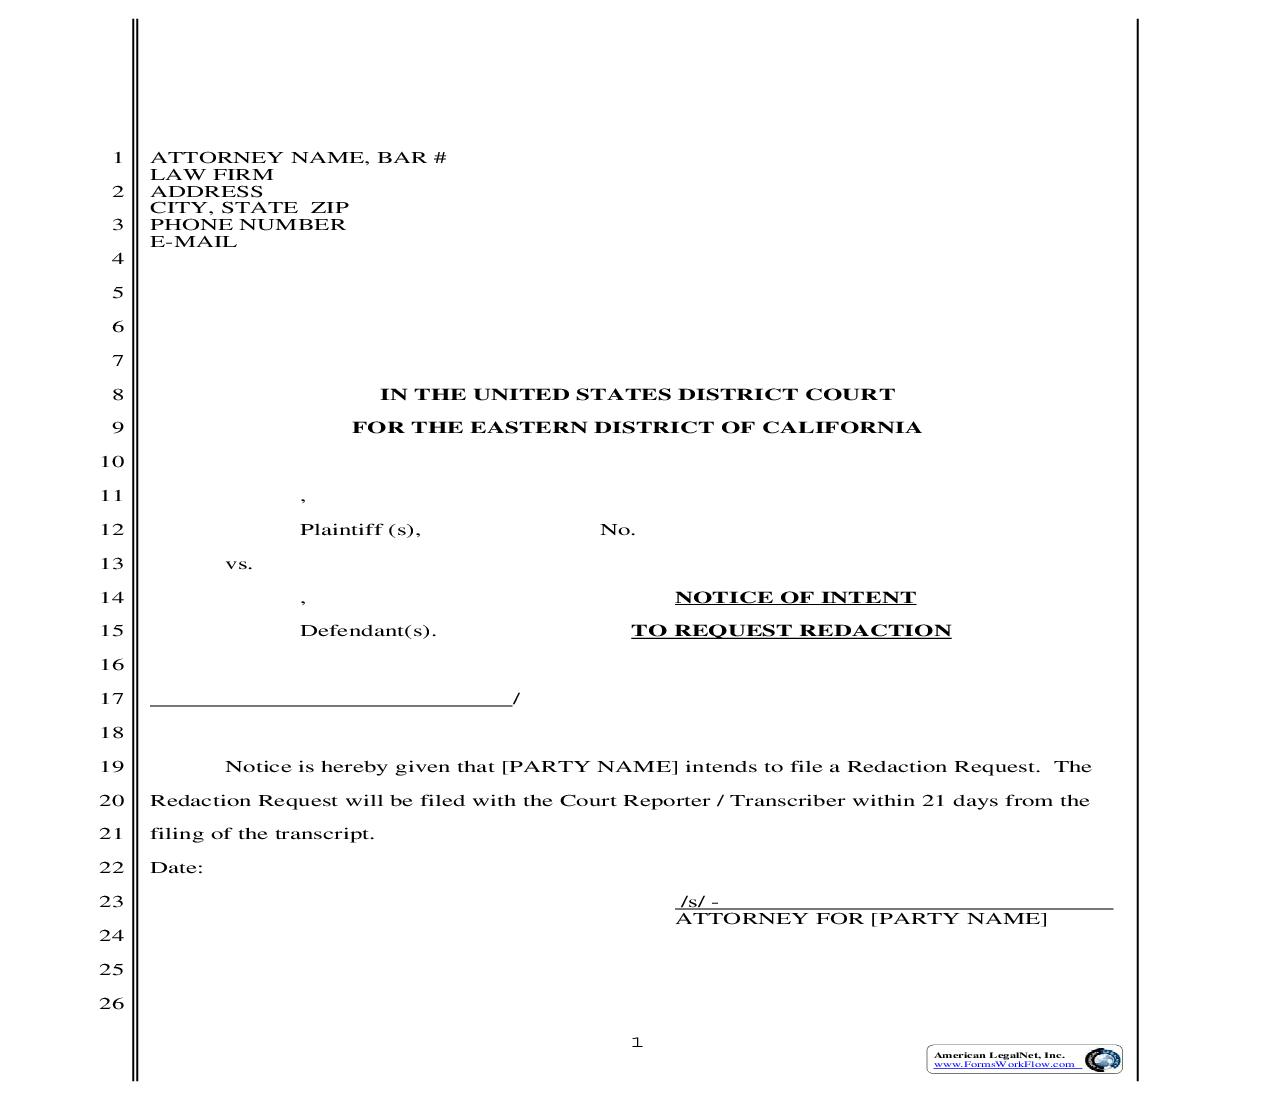 Notice Of Intent To Request Redaction | Pdf Fpdf Doc Docx | California